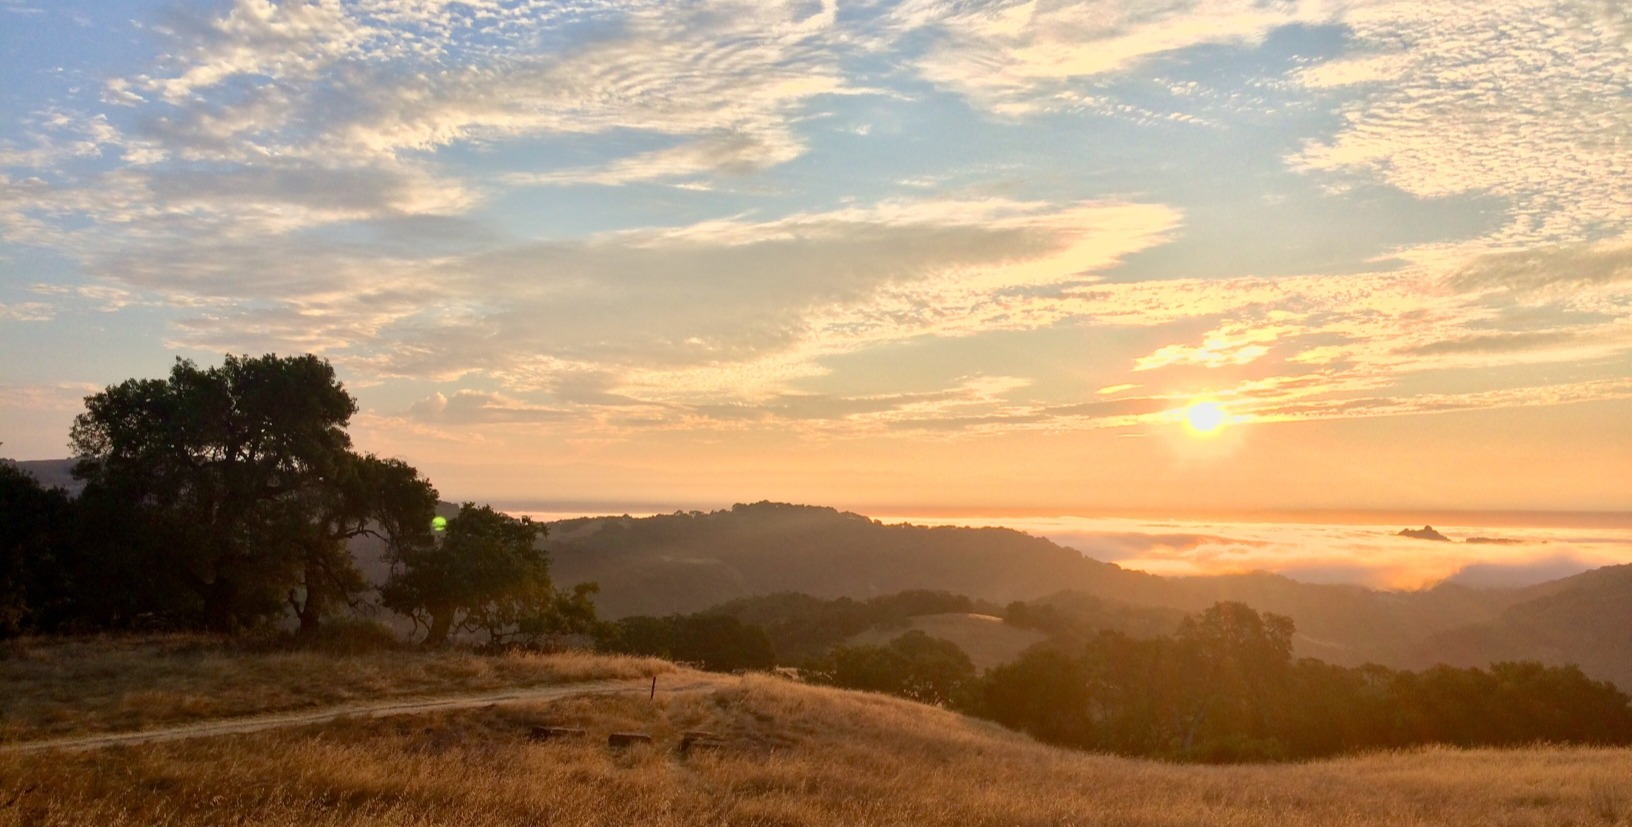 Sunrise over Coyote Valley